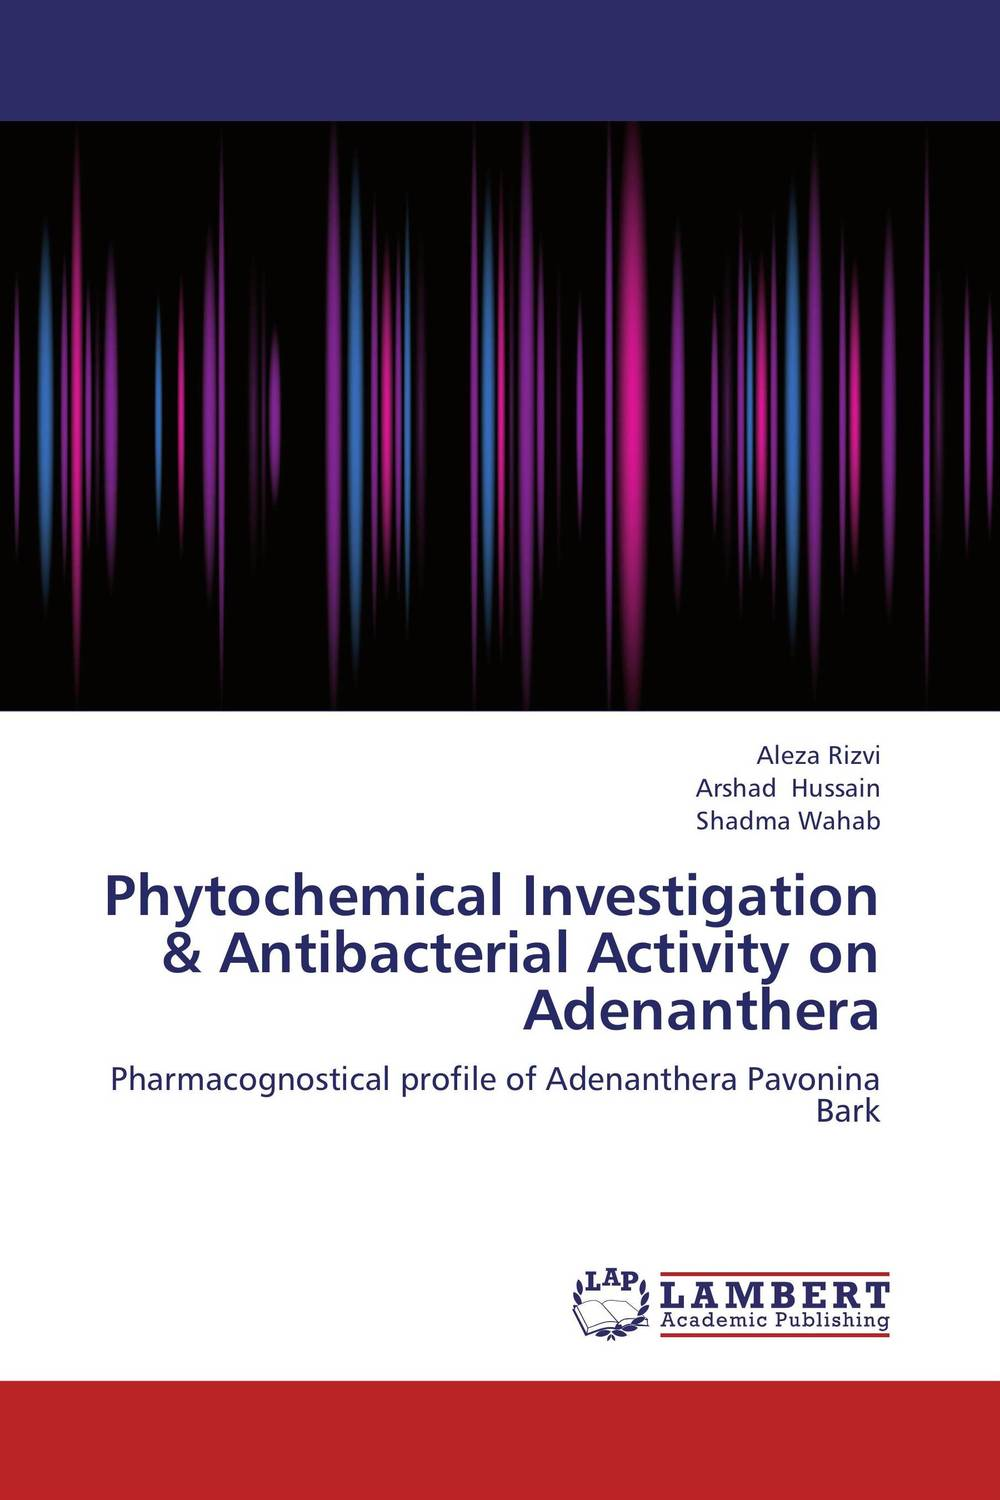 Phytochemical Investigation & Antibacterial Activity on Adenanthera phytochemical investigation